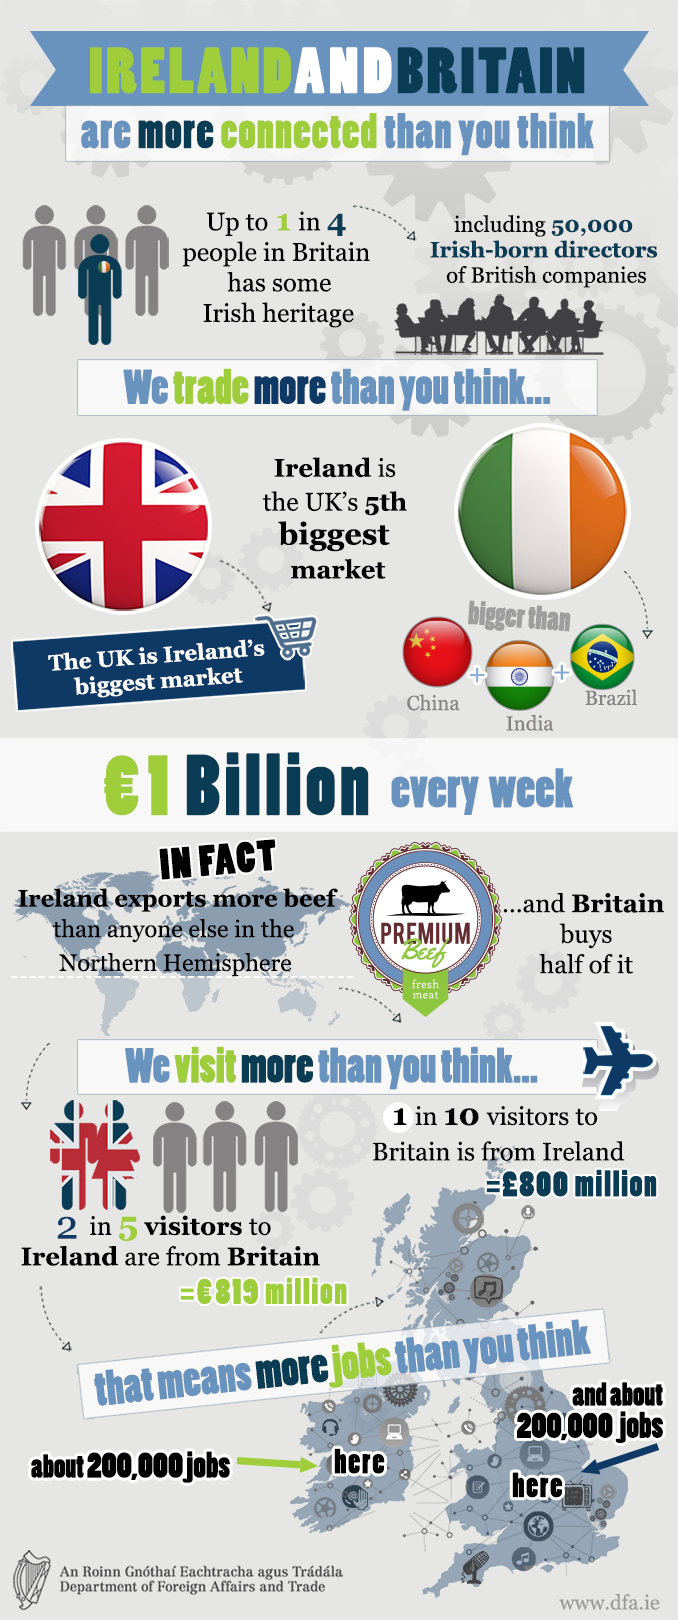 Ireland and Britain are more connected than you think.